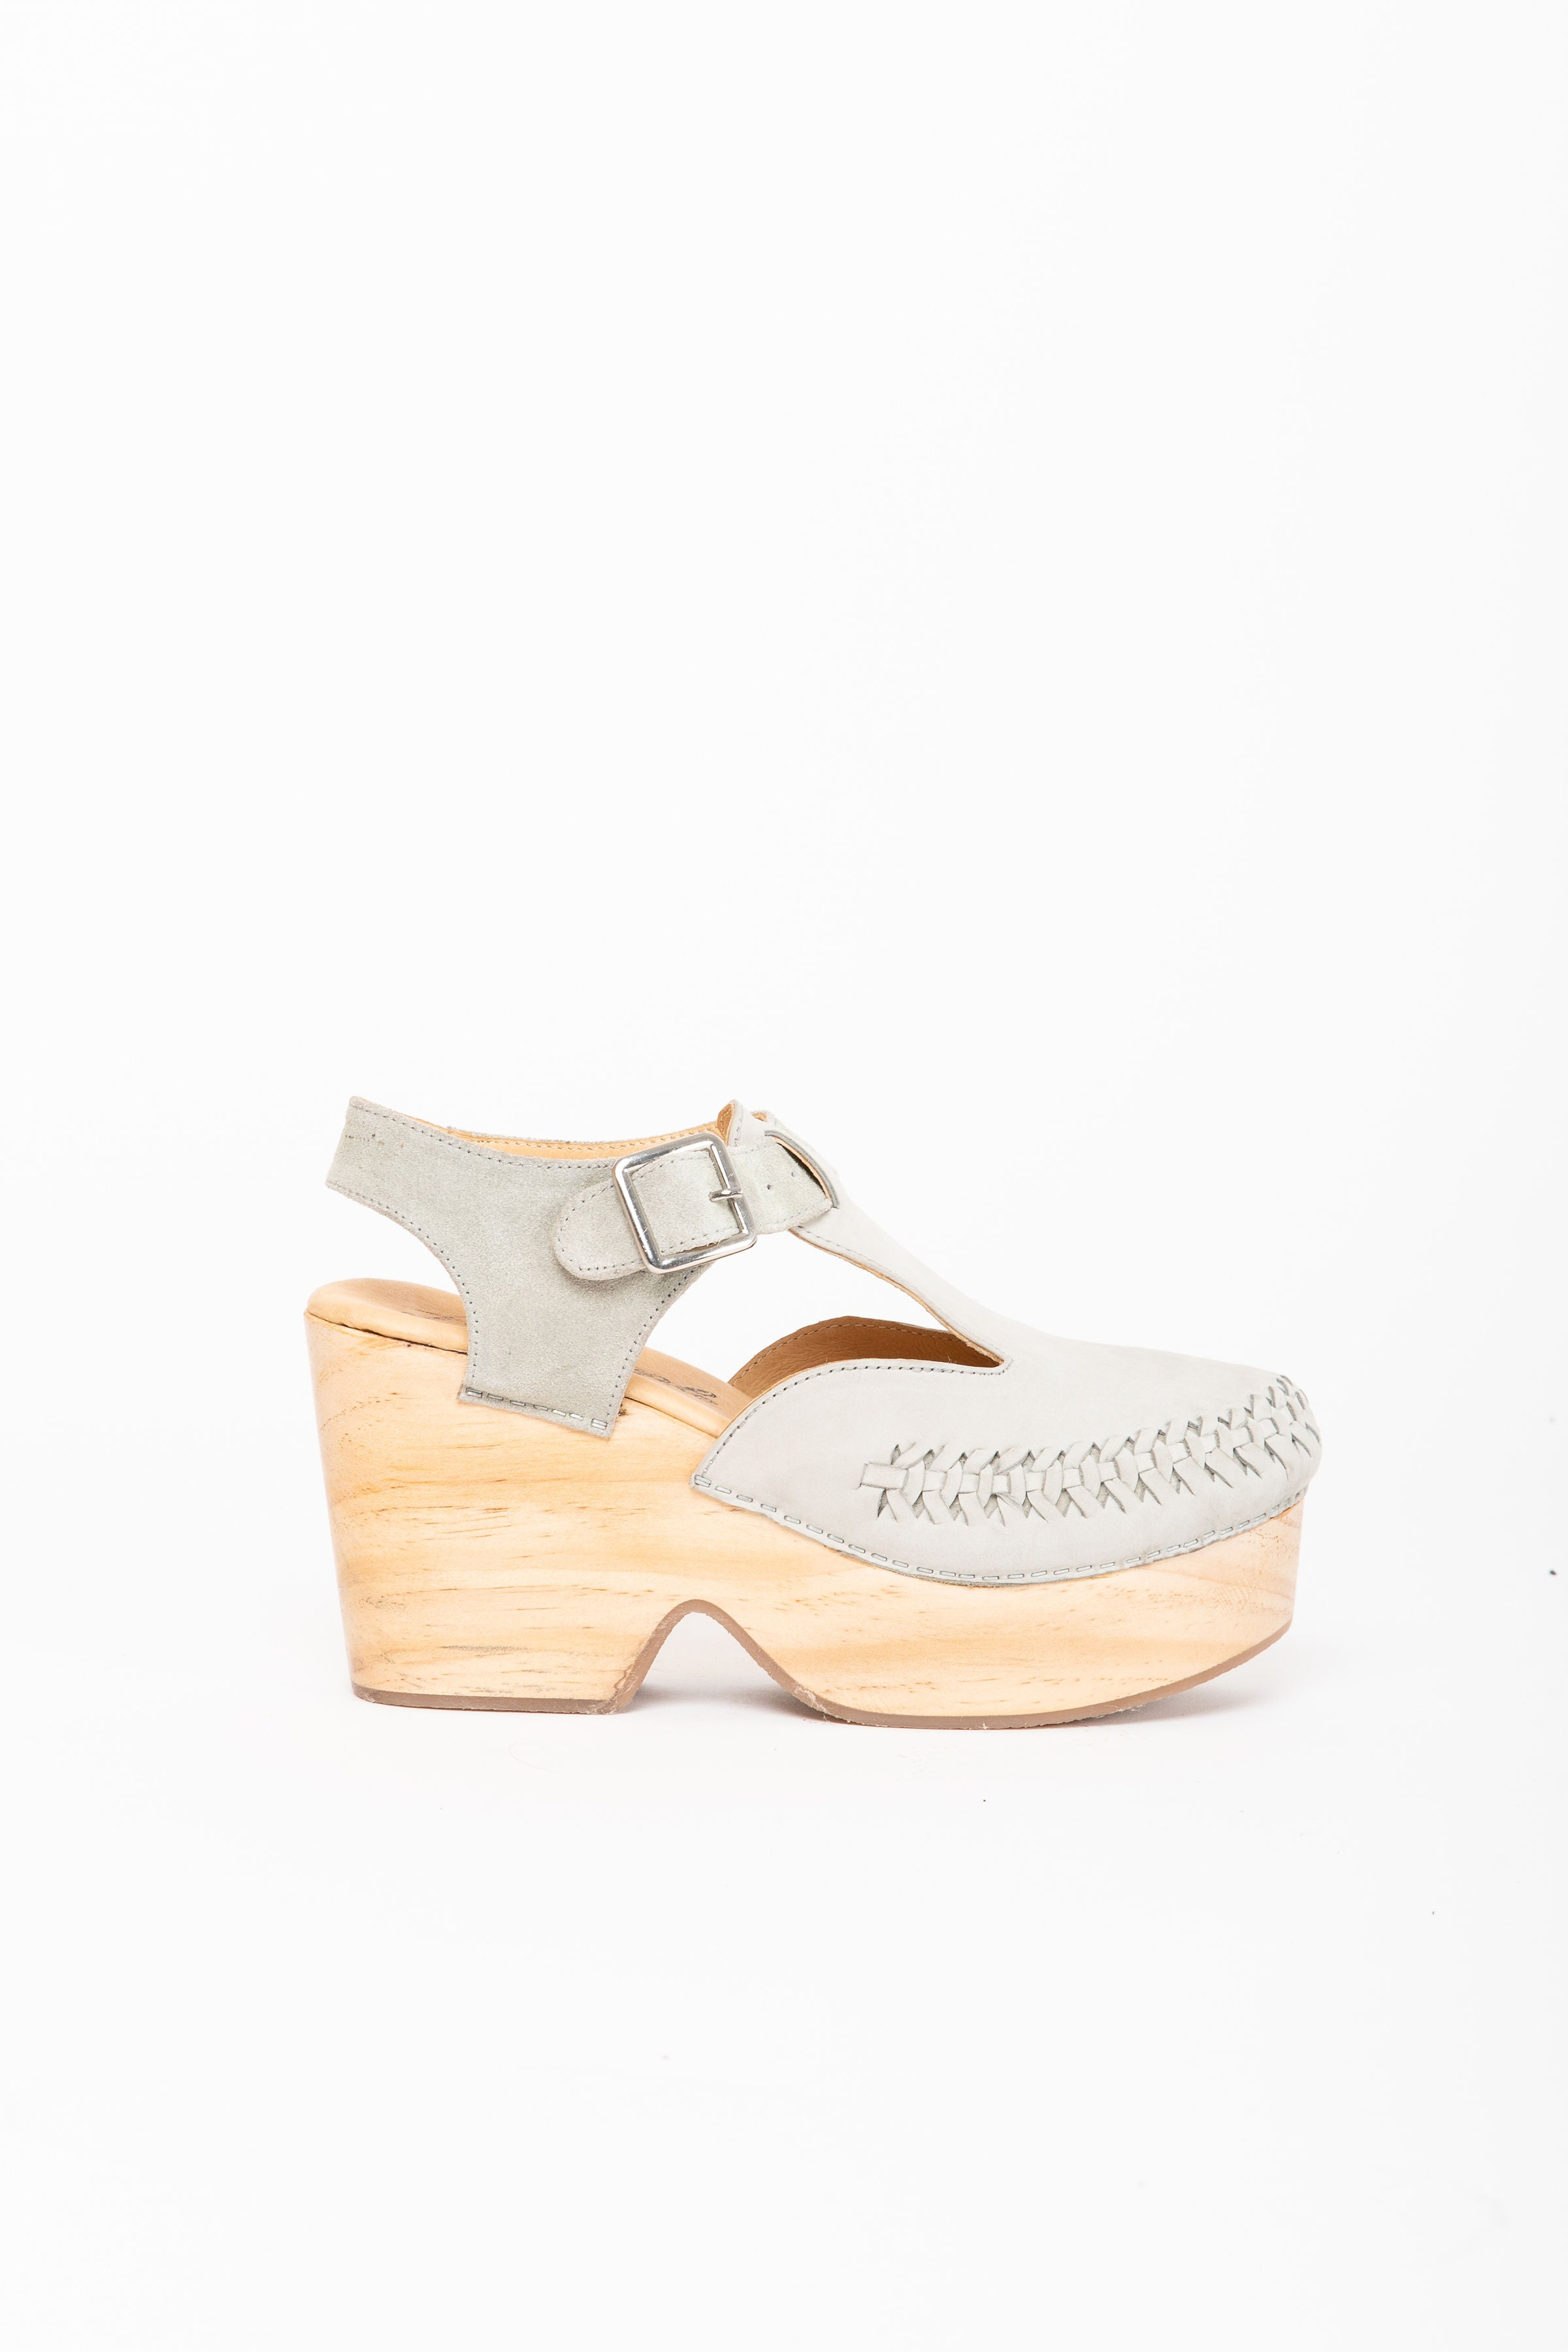 Free People: Emmer Clog in Grey